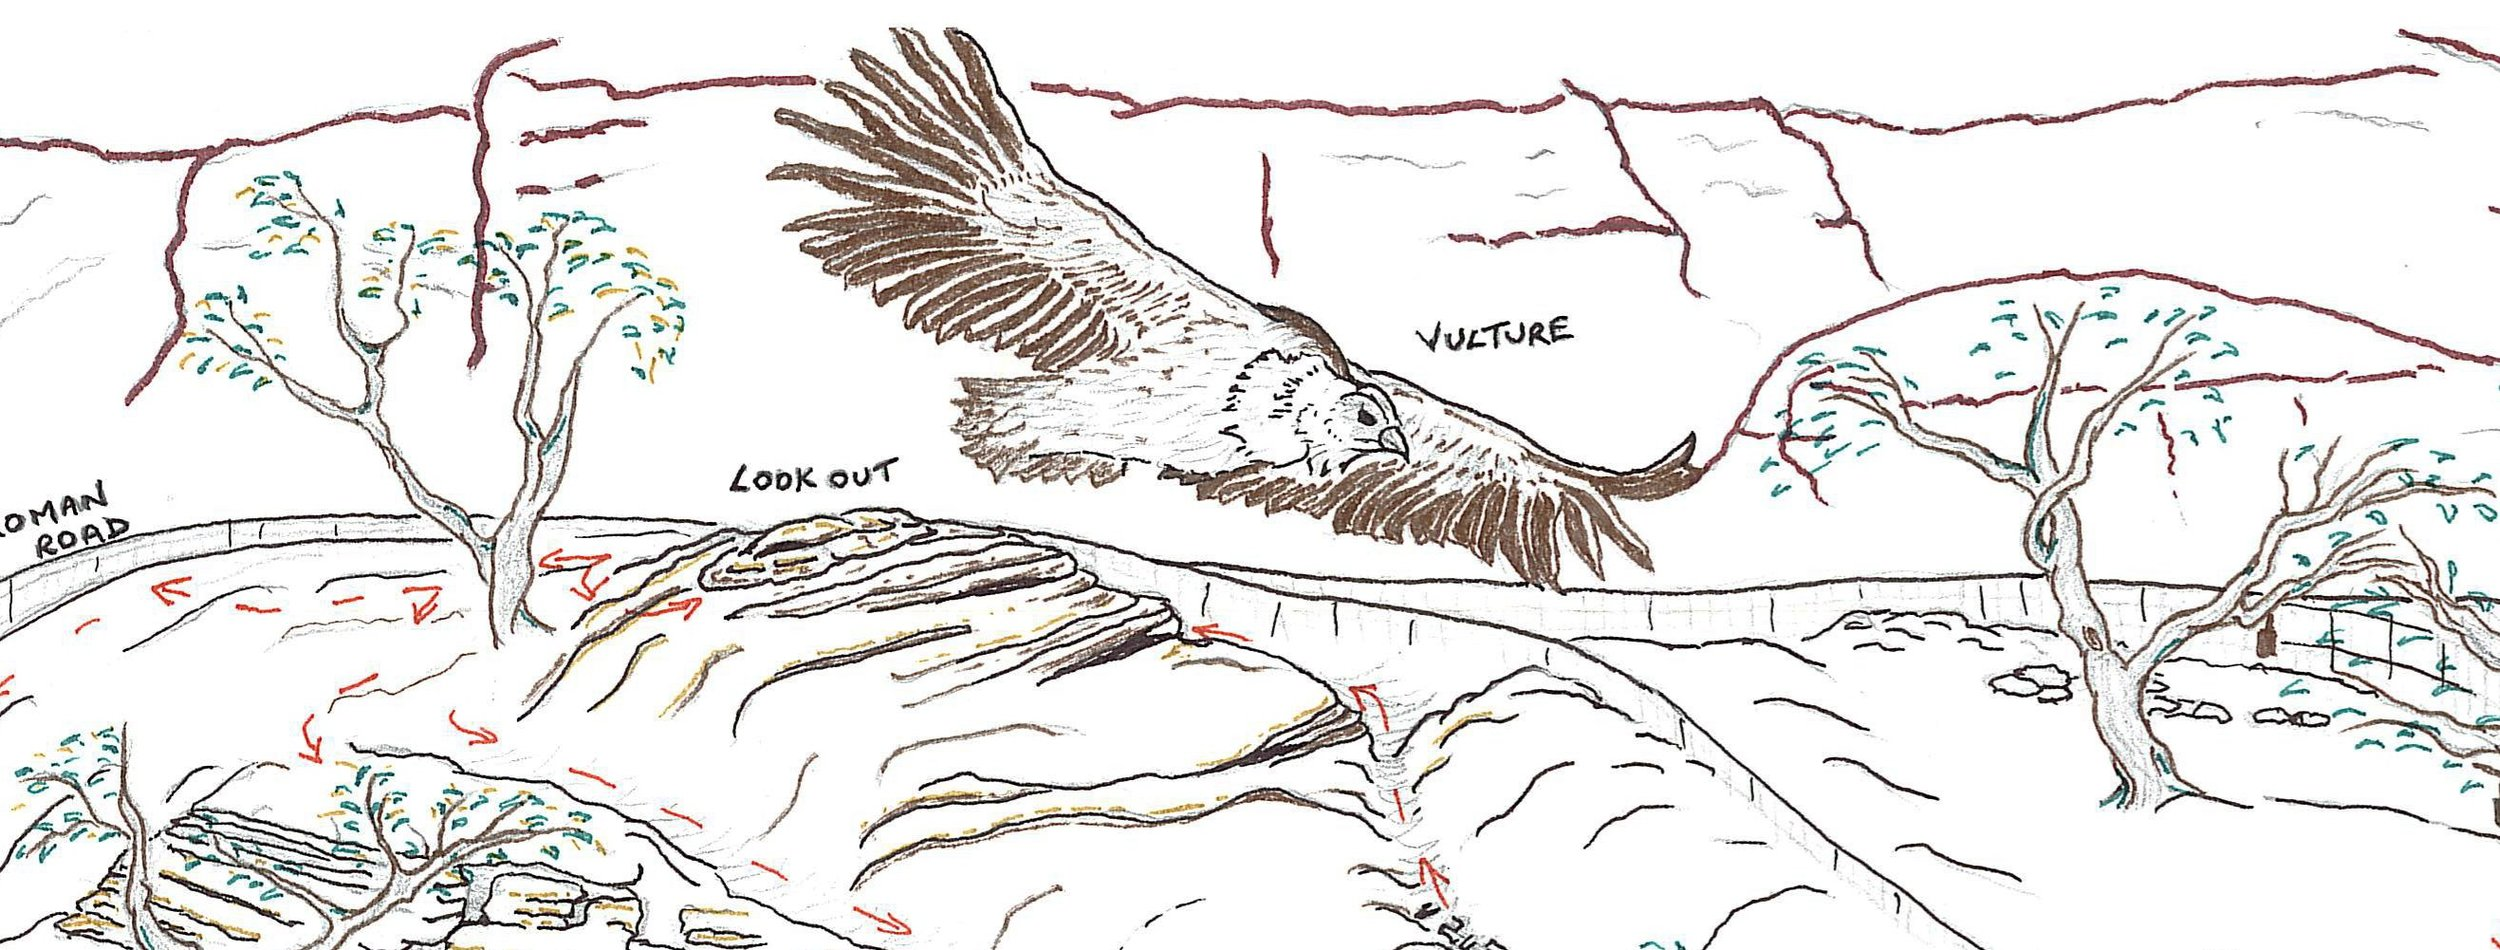 Vix's vulture from the nature trail map